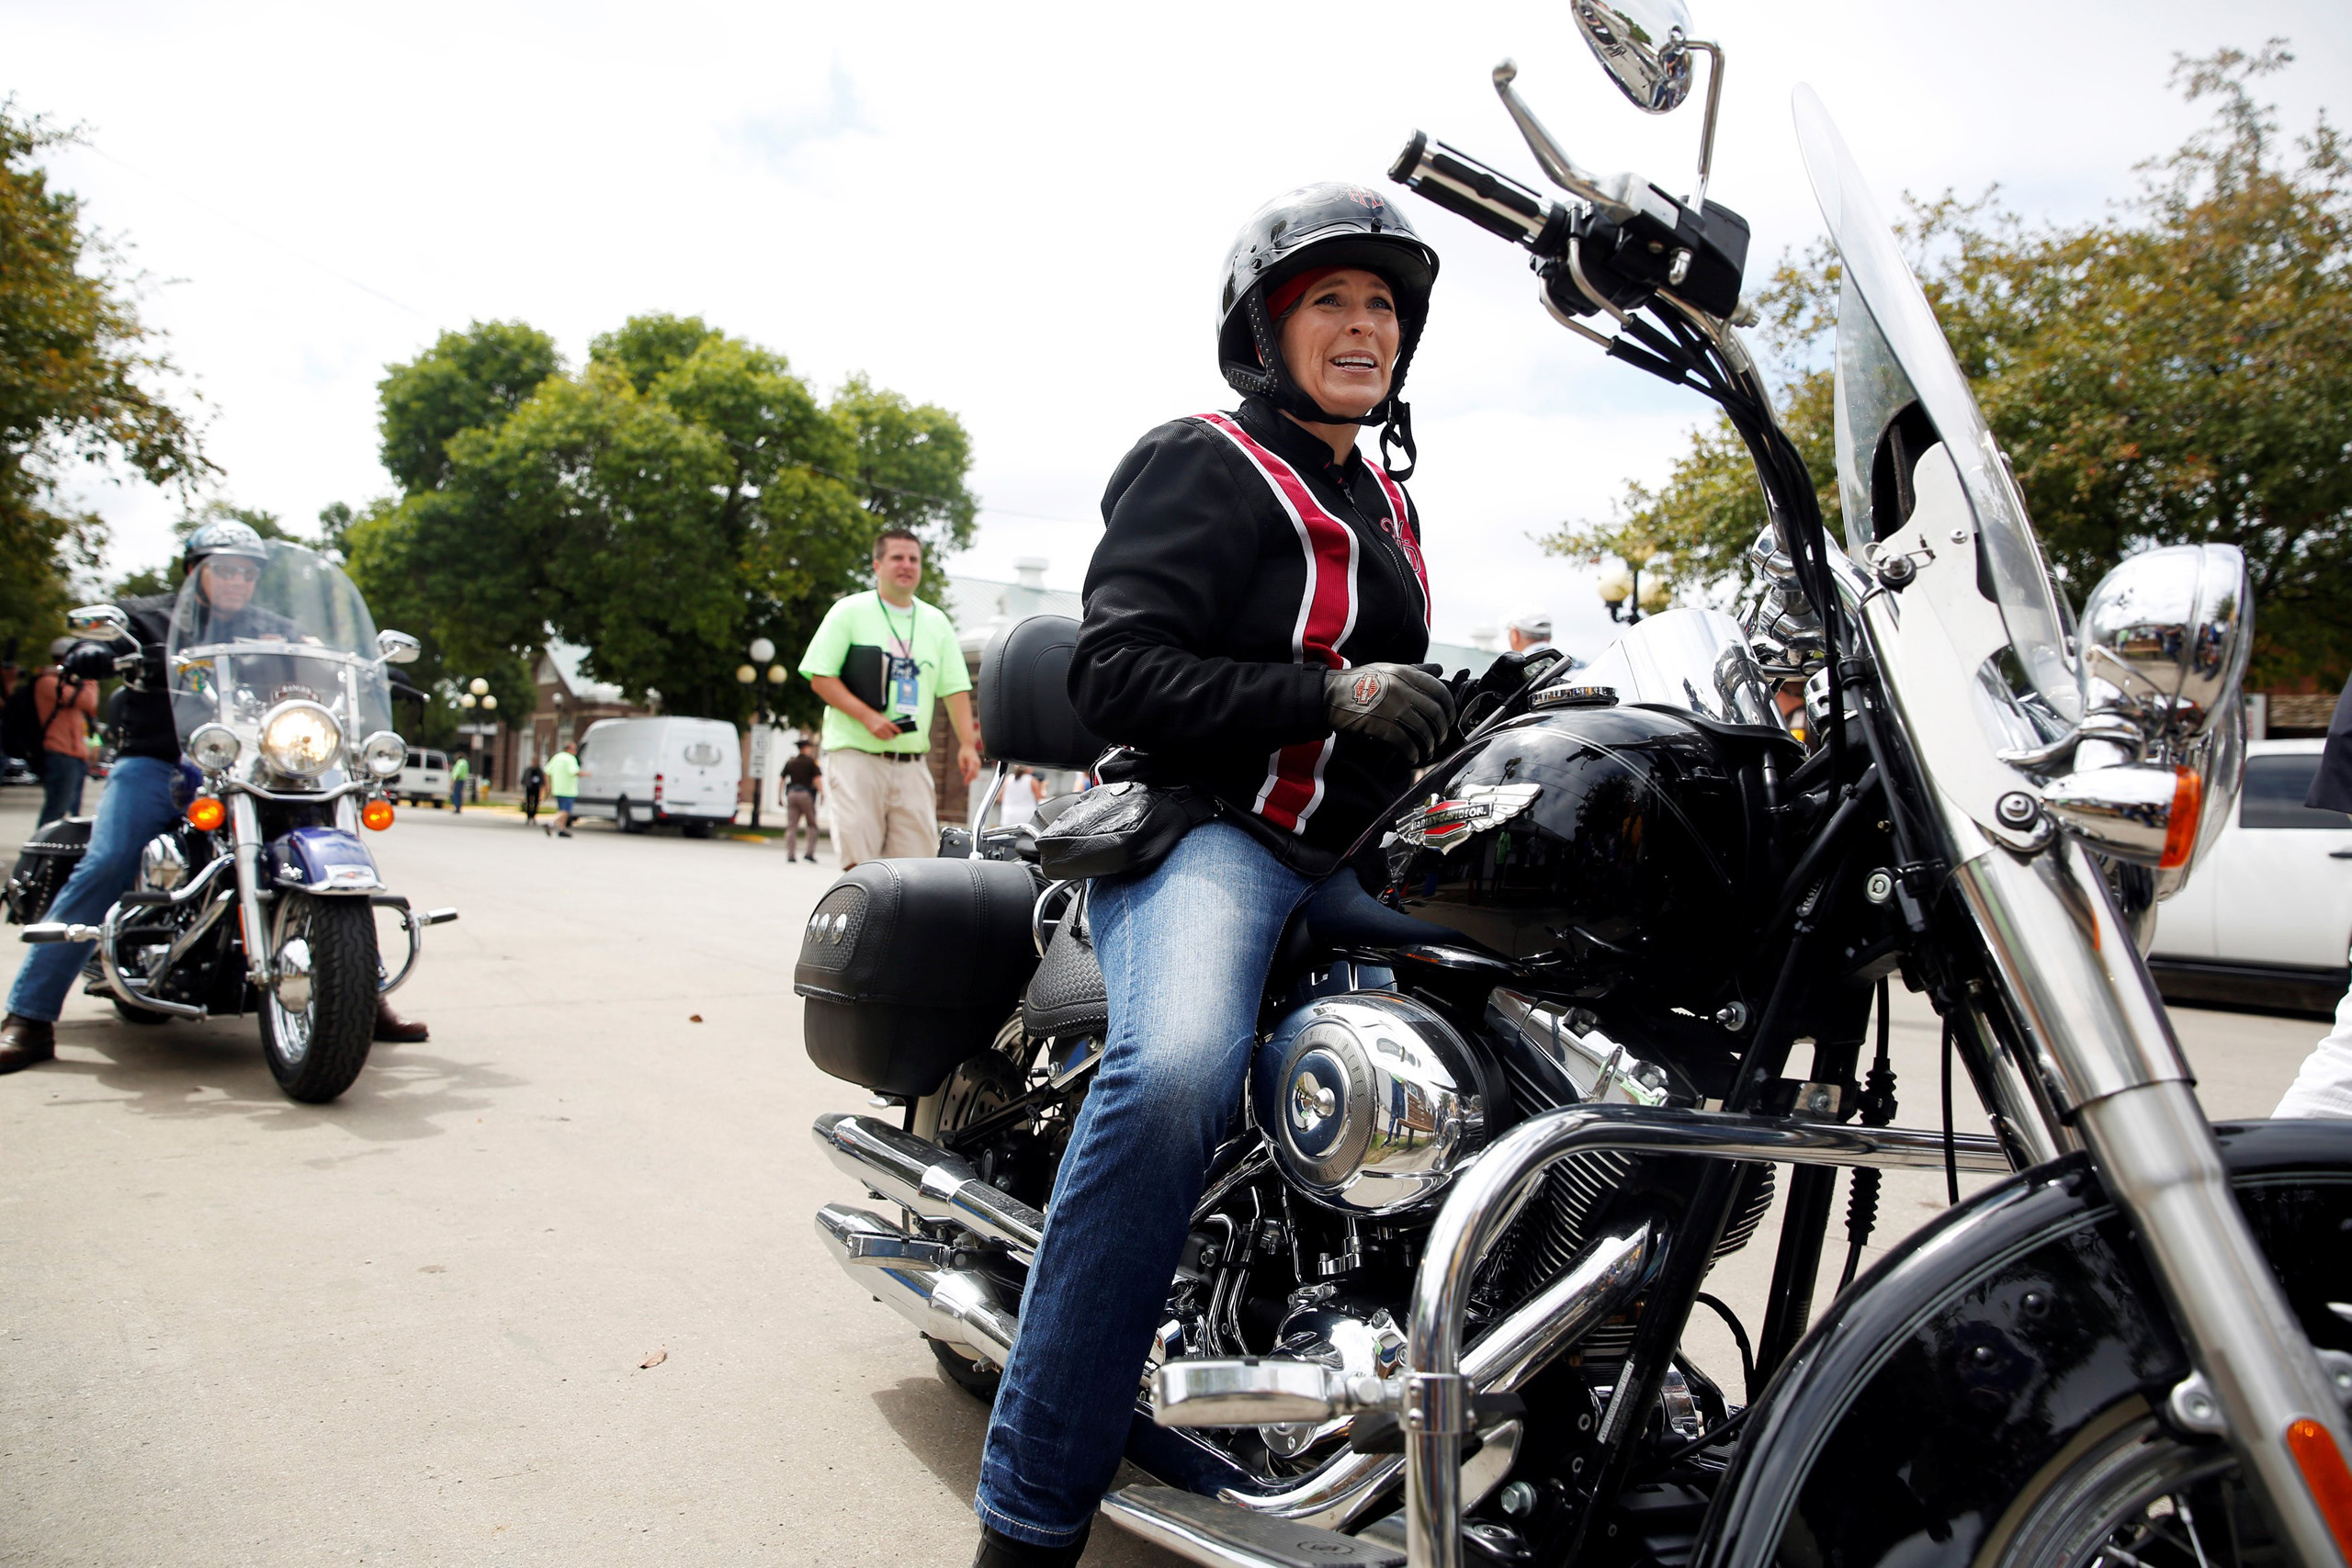 Iowa Senator Joni Ernst arrives via motorcycle to her annual Roast and Ride at the Iowa State Fairgrounds in Des Moines Aug. 27, 2016.